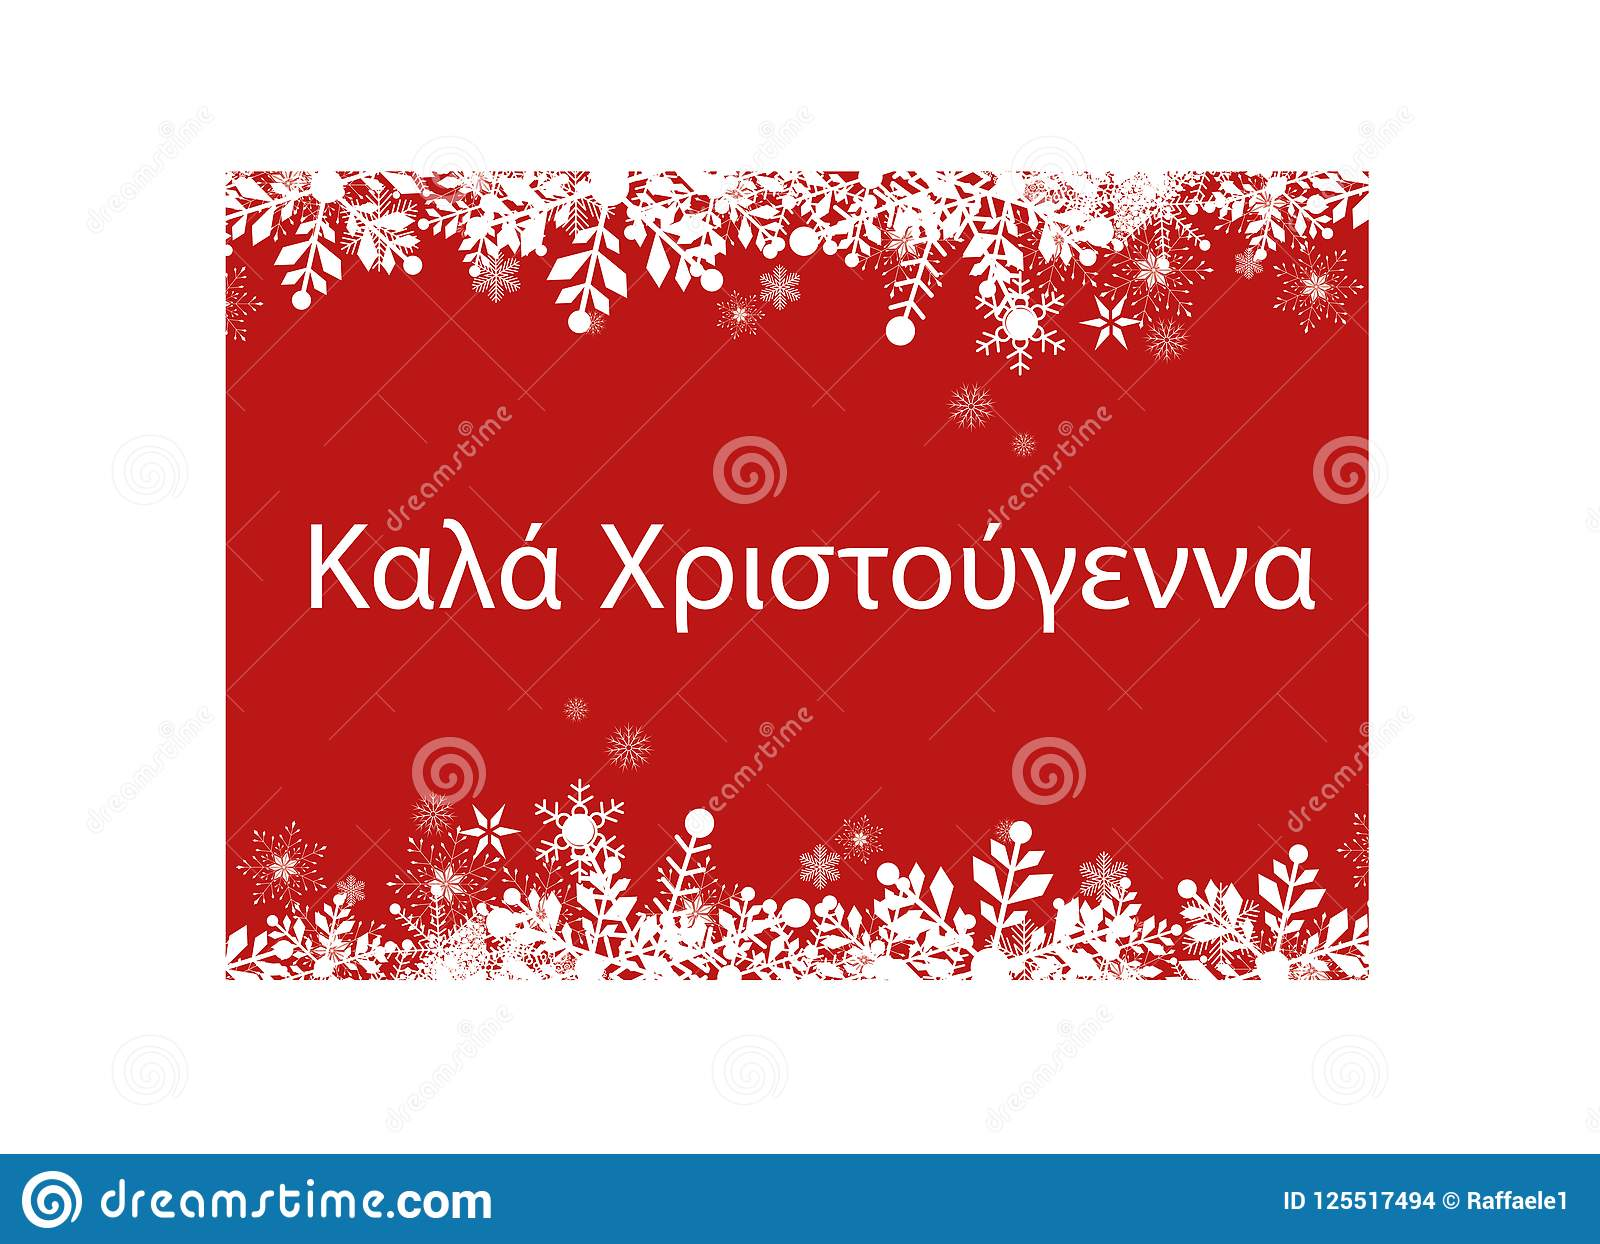 Merry Christmas In Greek Red Merry Christmas In Greek Greeting Card For Web And Print Stock